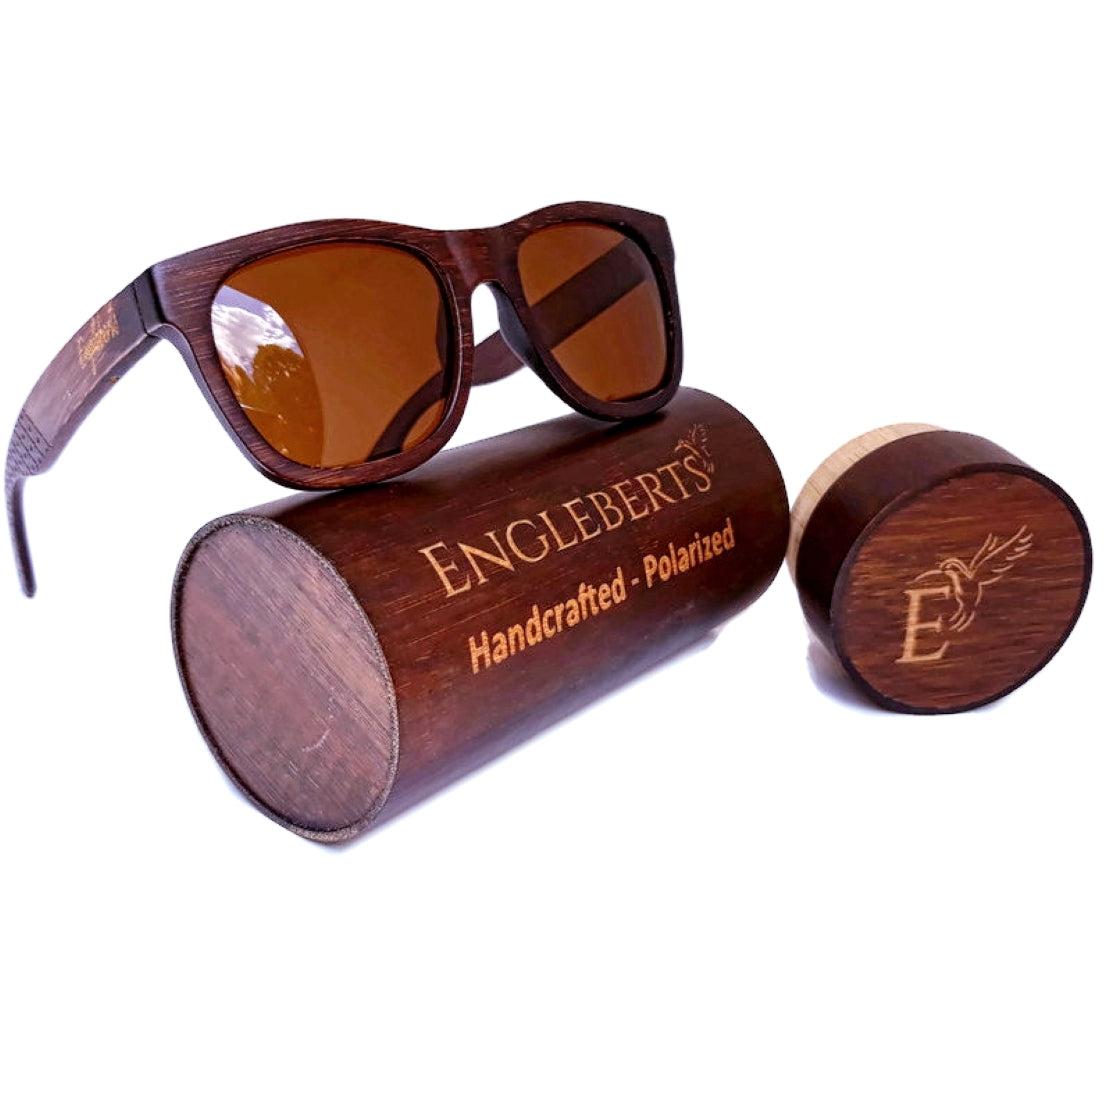 a64ae75fc16 Premium Handcrafted Ebony Wooden Sunglasses With Bamboo Case ...